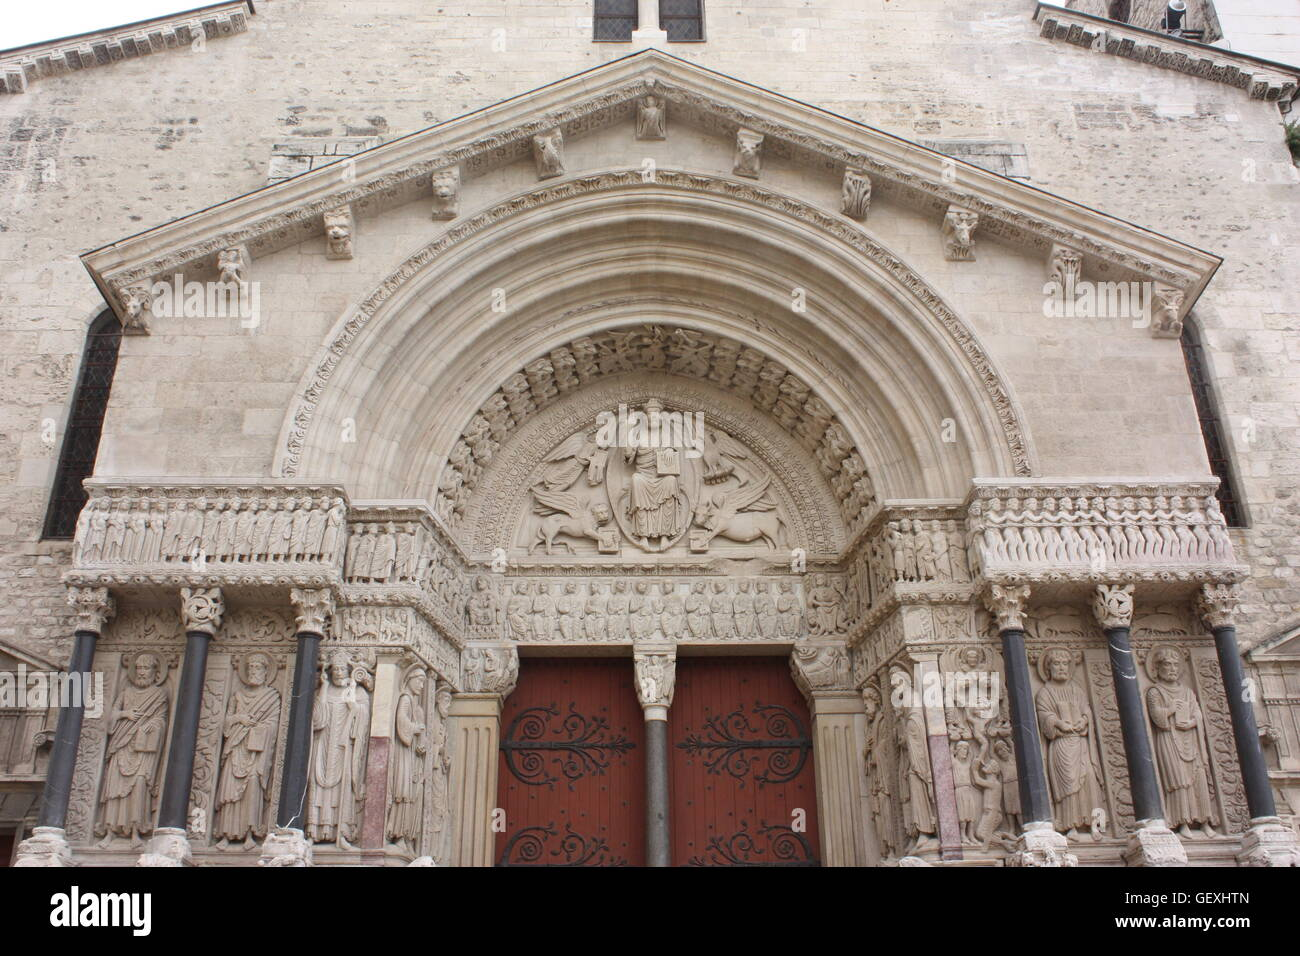 The west front of the Church of St. Trophime in Arles, France Stock Photo